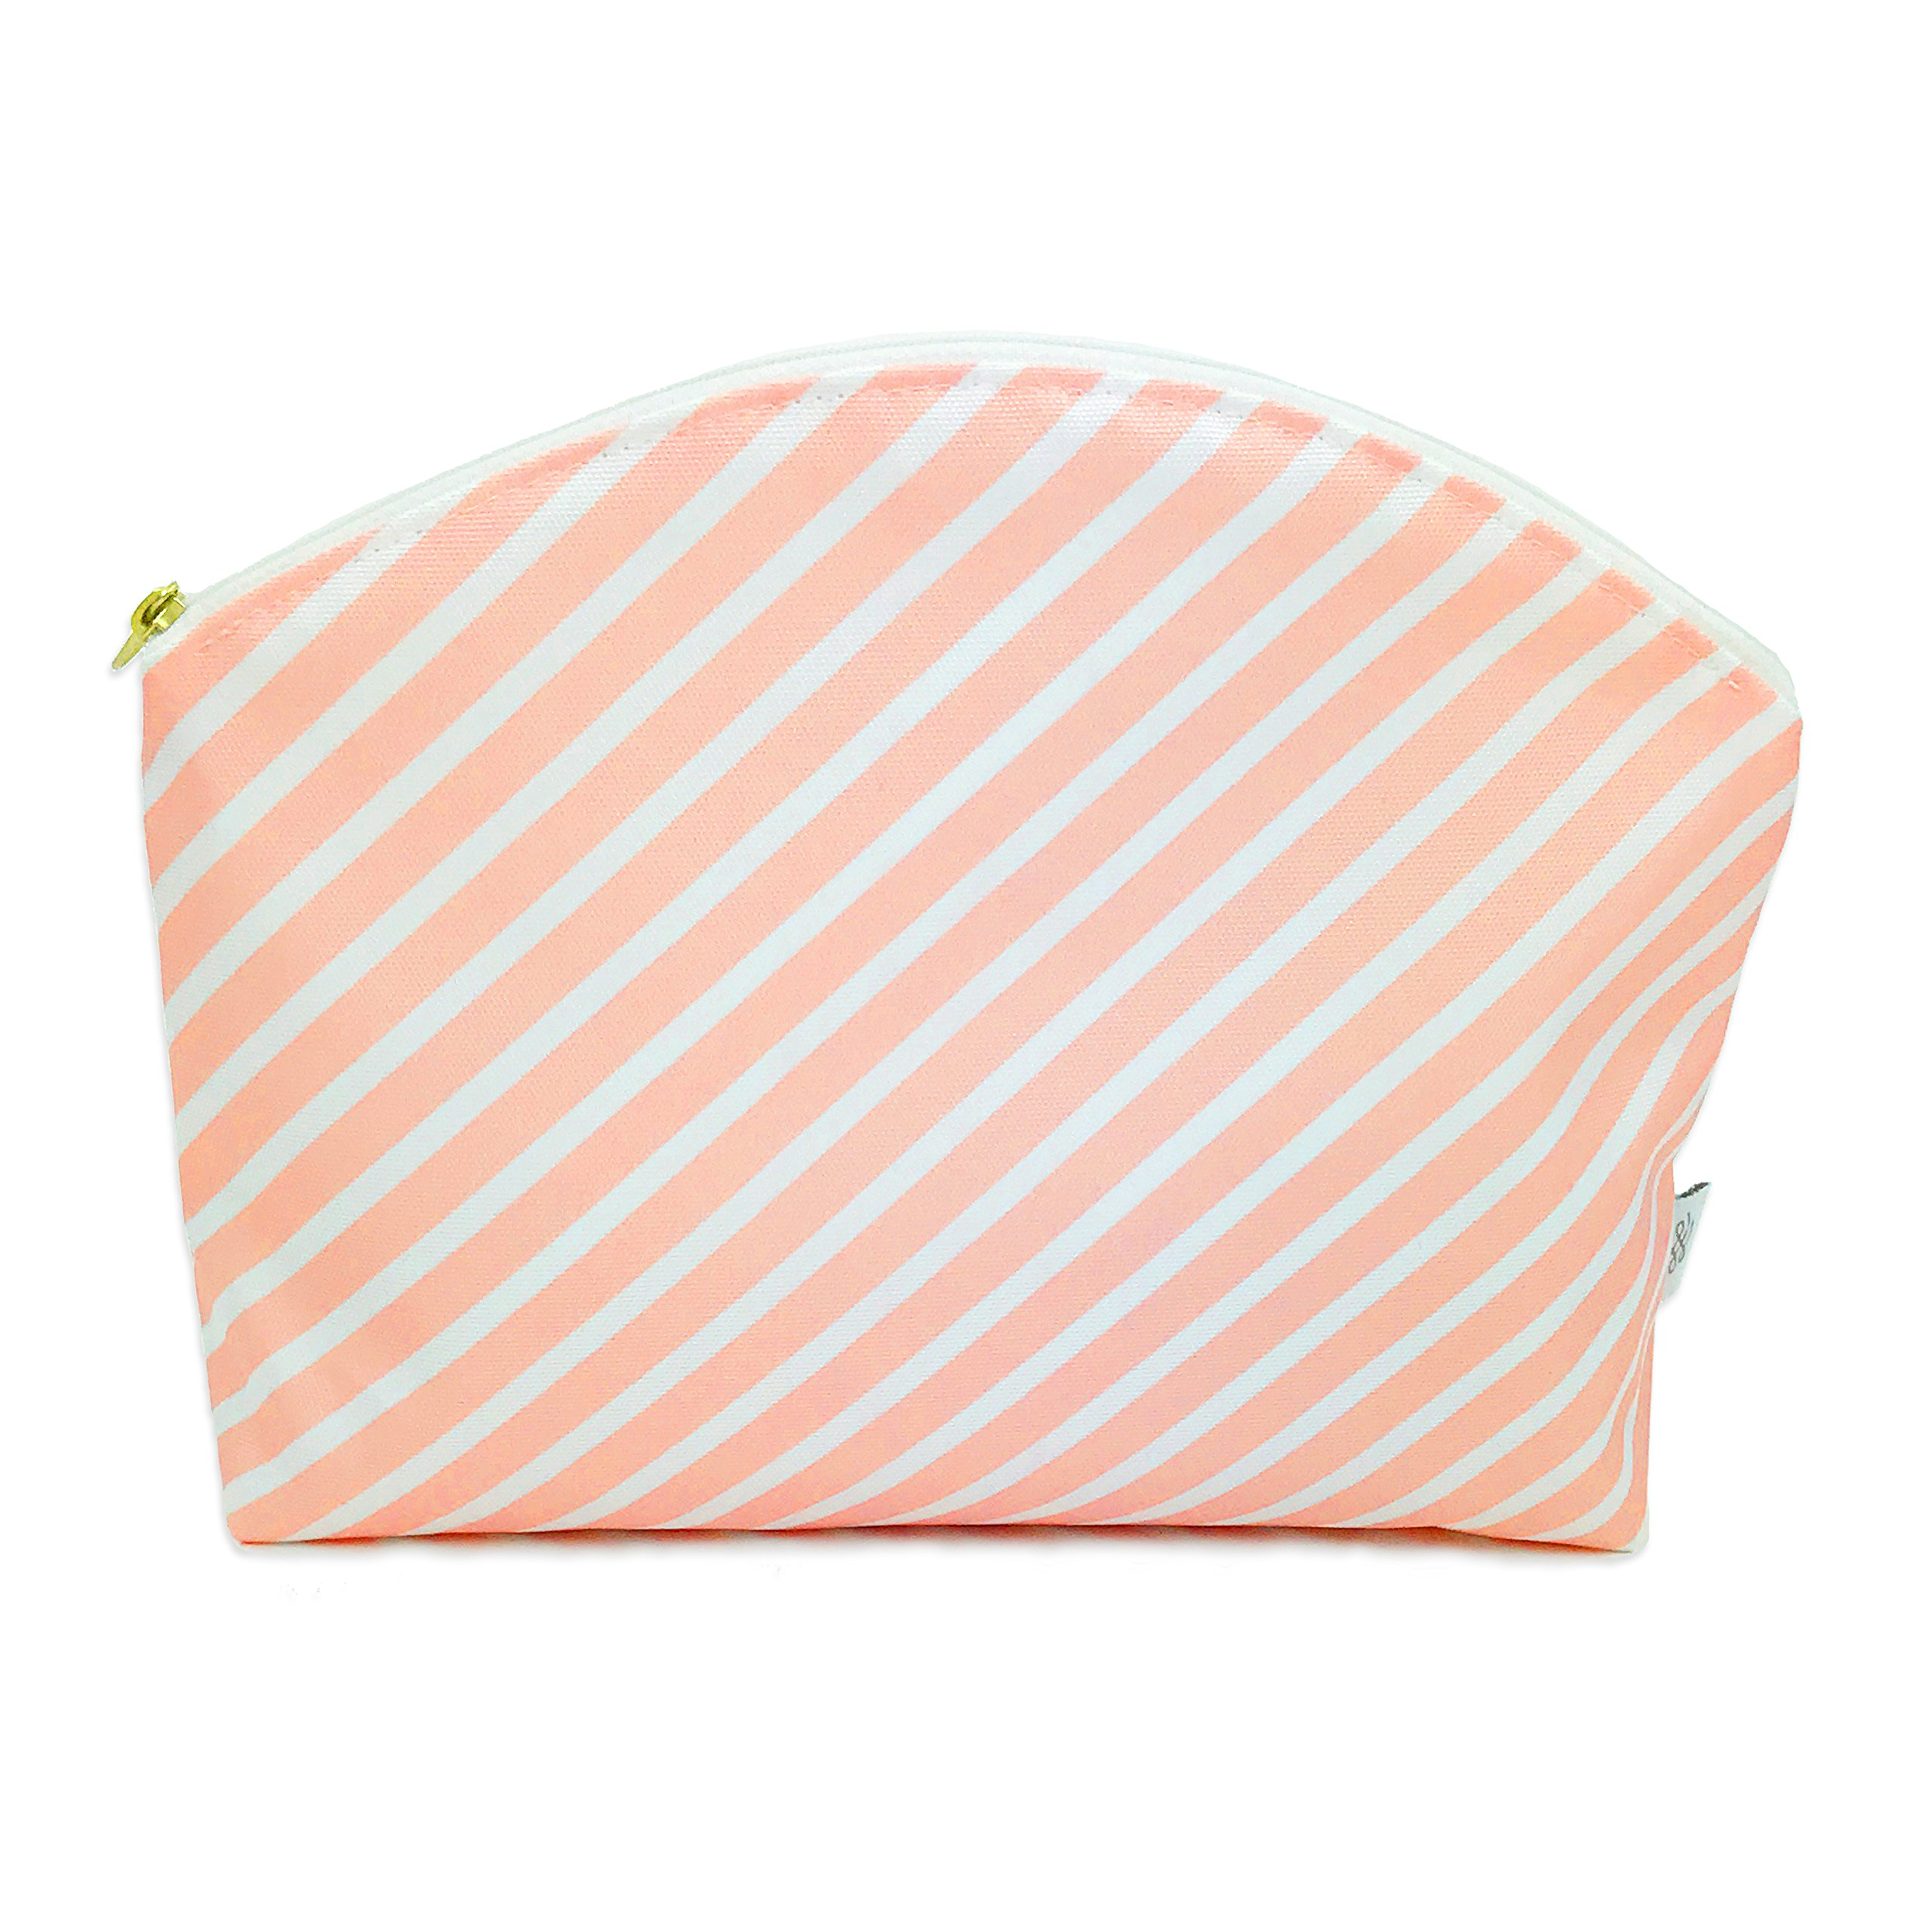 Waterproof Simple Clutch - Travel Toiletry Case, Cosmetic Makeup Bag, Multifunction Purse or Hand Bag Organizer, Diaper Clutch, Small Wet Bag (Blush Stripe)